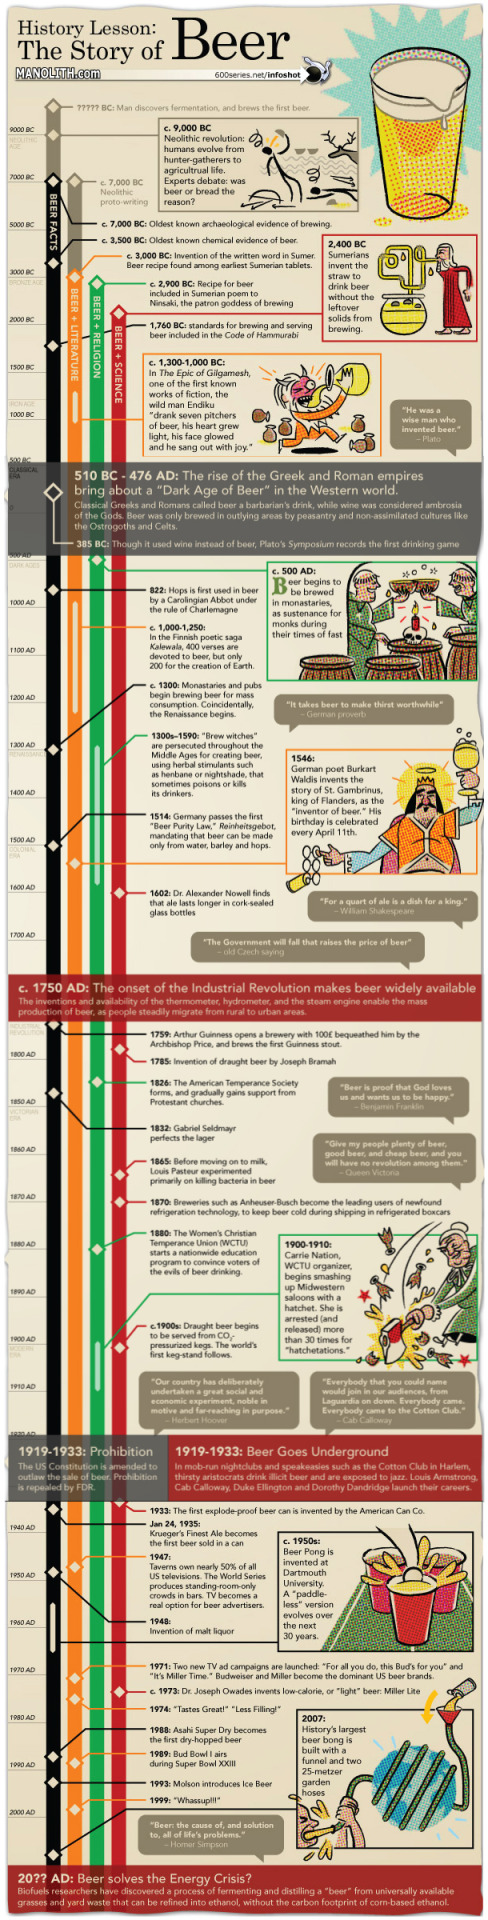 ladolcevitacooking: http://www.ladolcevitacooking.com/history-lesson-the-story-beer-infographic We can't know when Man discovered fermentation and brewed the first beer but historians wonder if, besides bread, also beer has to be considered among the elements of the Neolithic Revolution of the 9.000 B.C. Dealing with beer, it's possible to affirm that the first signs of brewing were in 7000 B.C. while the official beer recipe as well as the invention of the same word and the invention of…